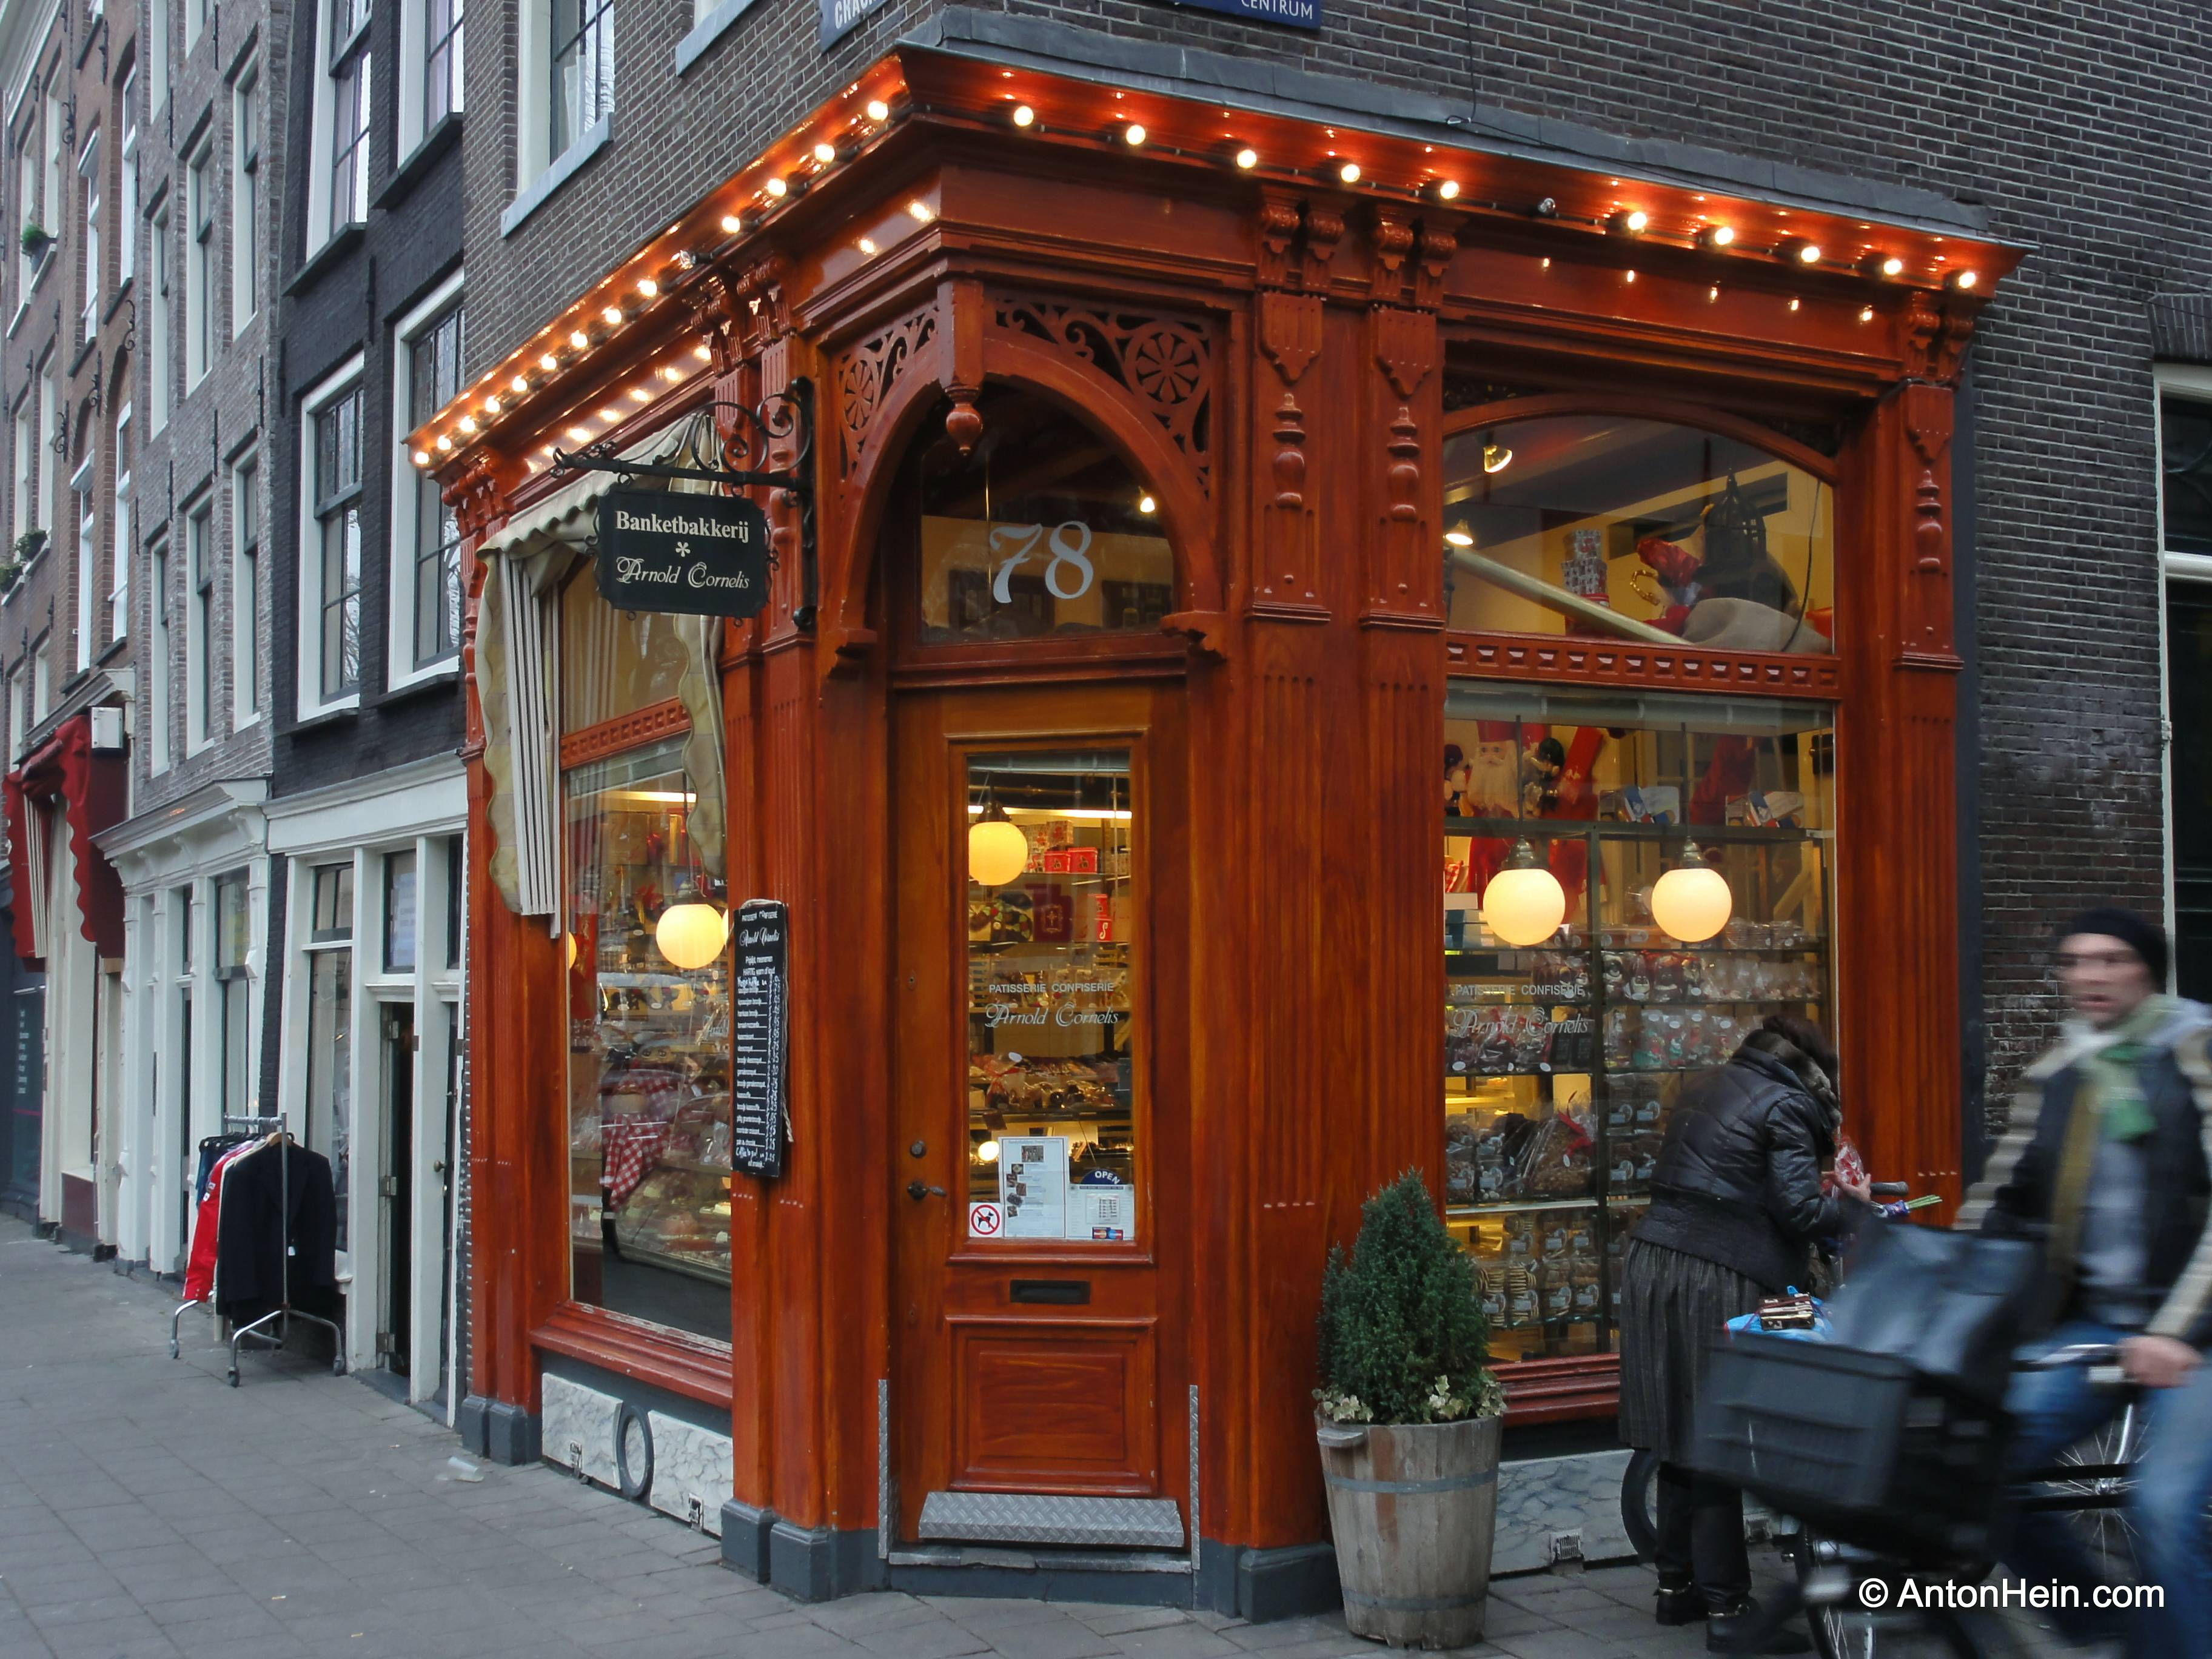 A pastry shop in Amsterdam's Jordaan district